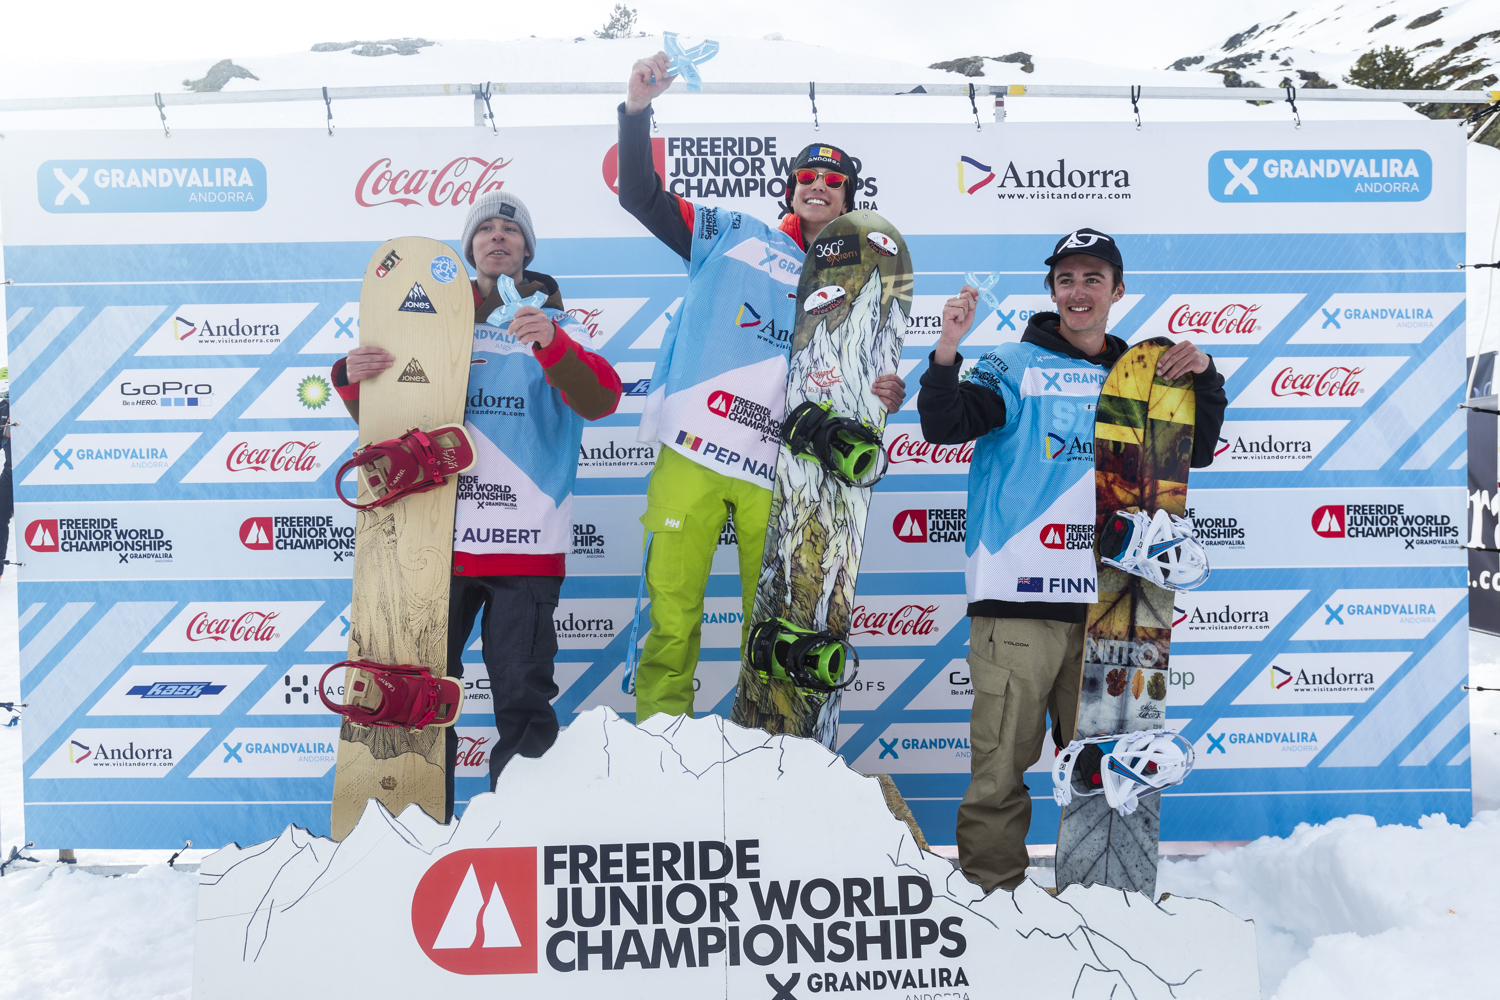 Freeride Junior World Championship